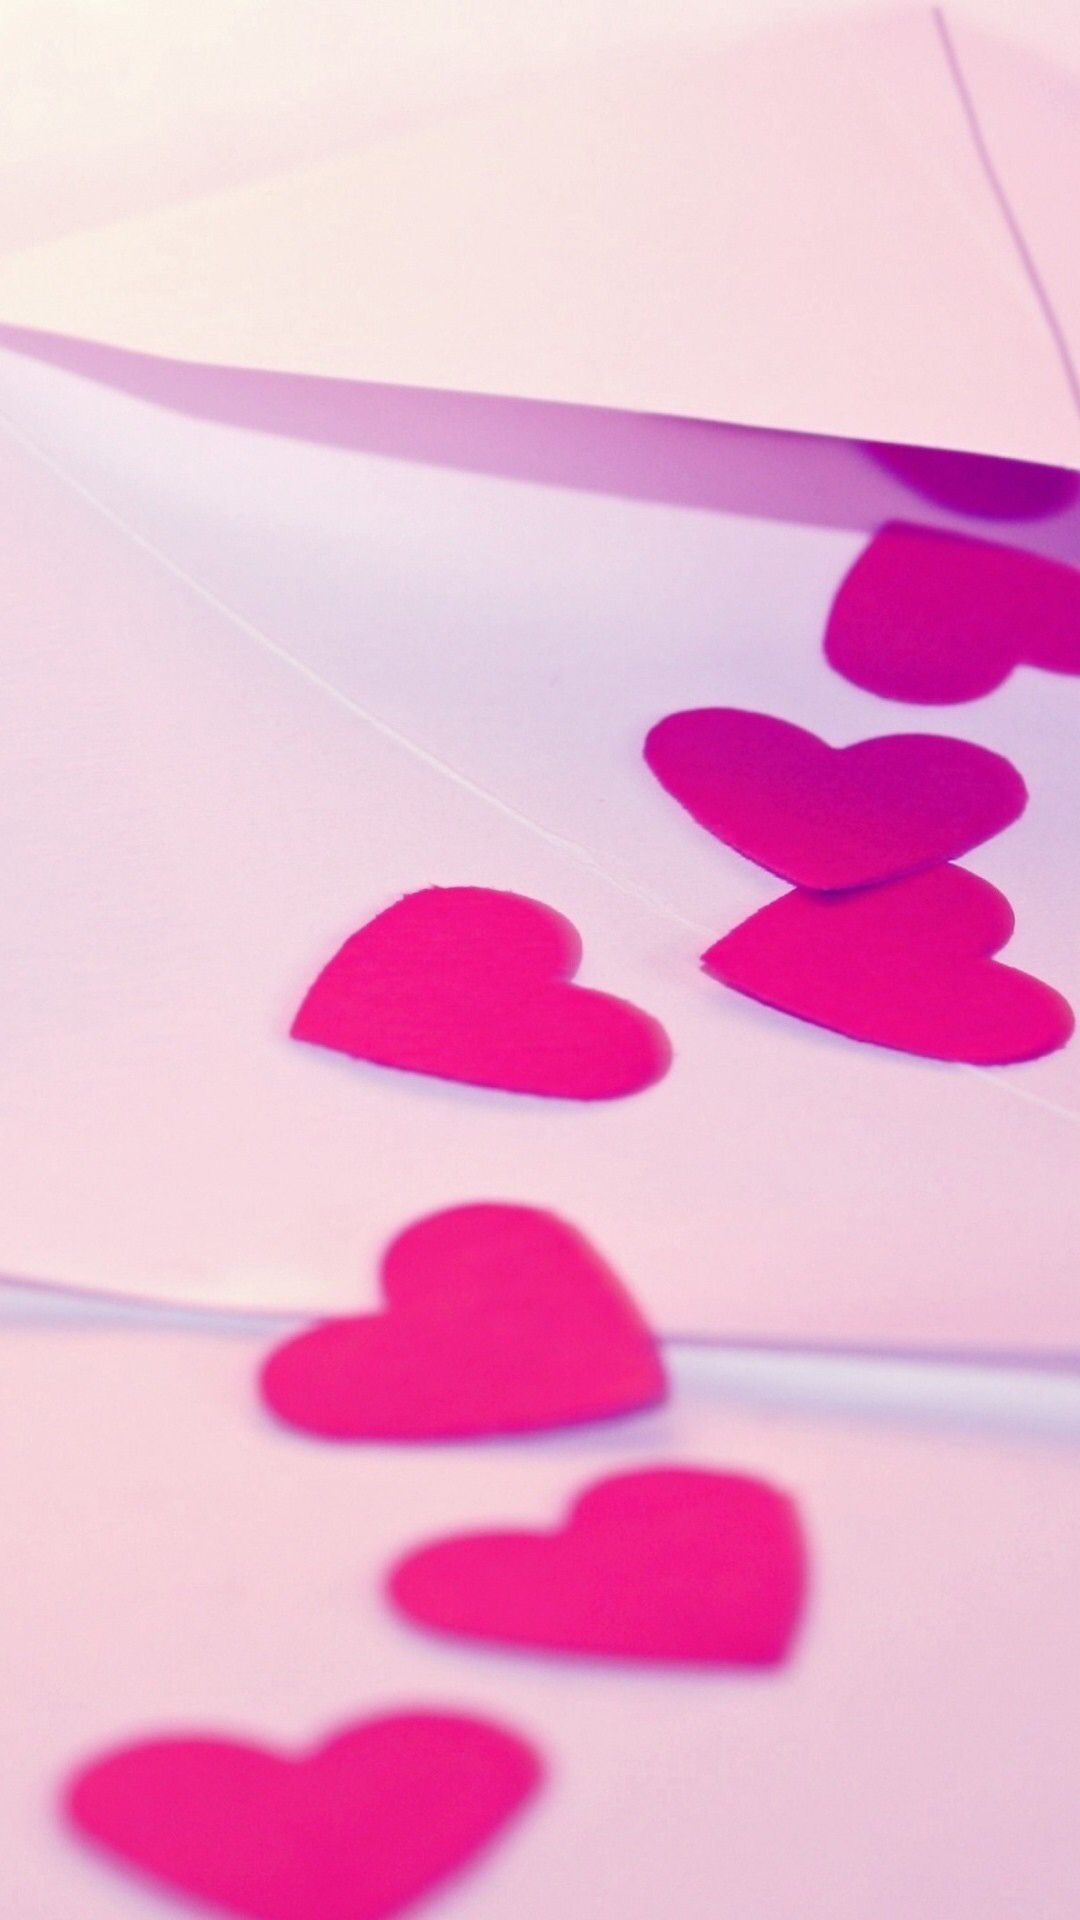 Tumblr valentines iphone wallpaper - Top 12 Love Wallpaper Iphone 6 Plus